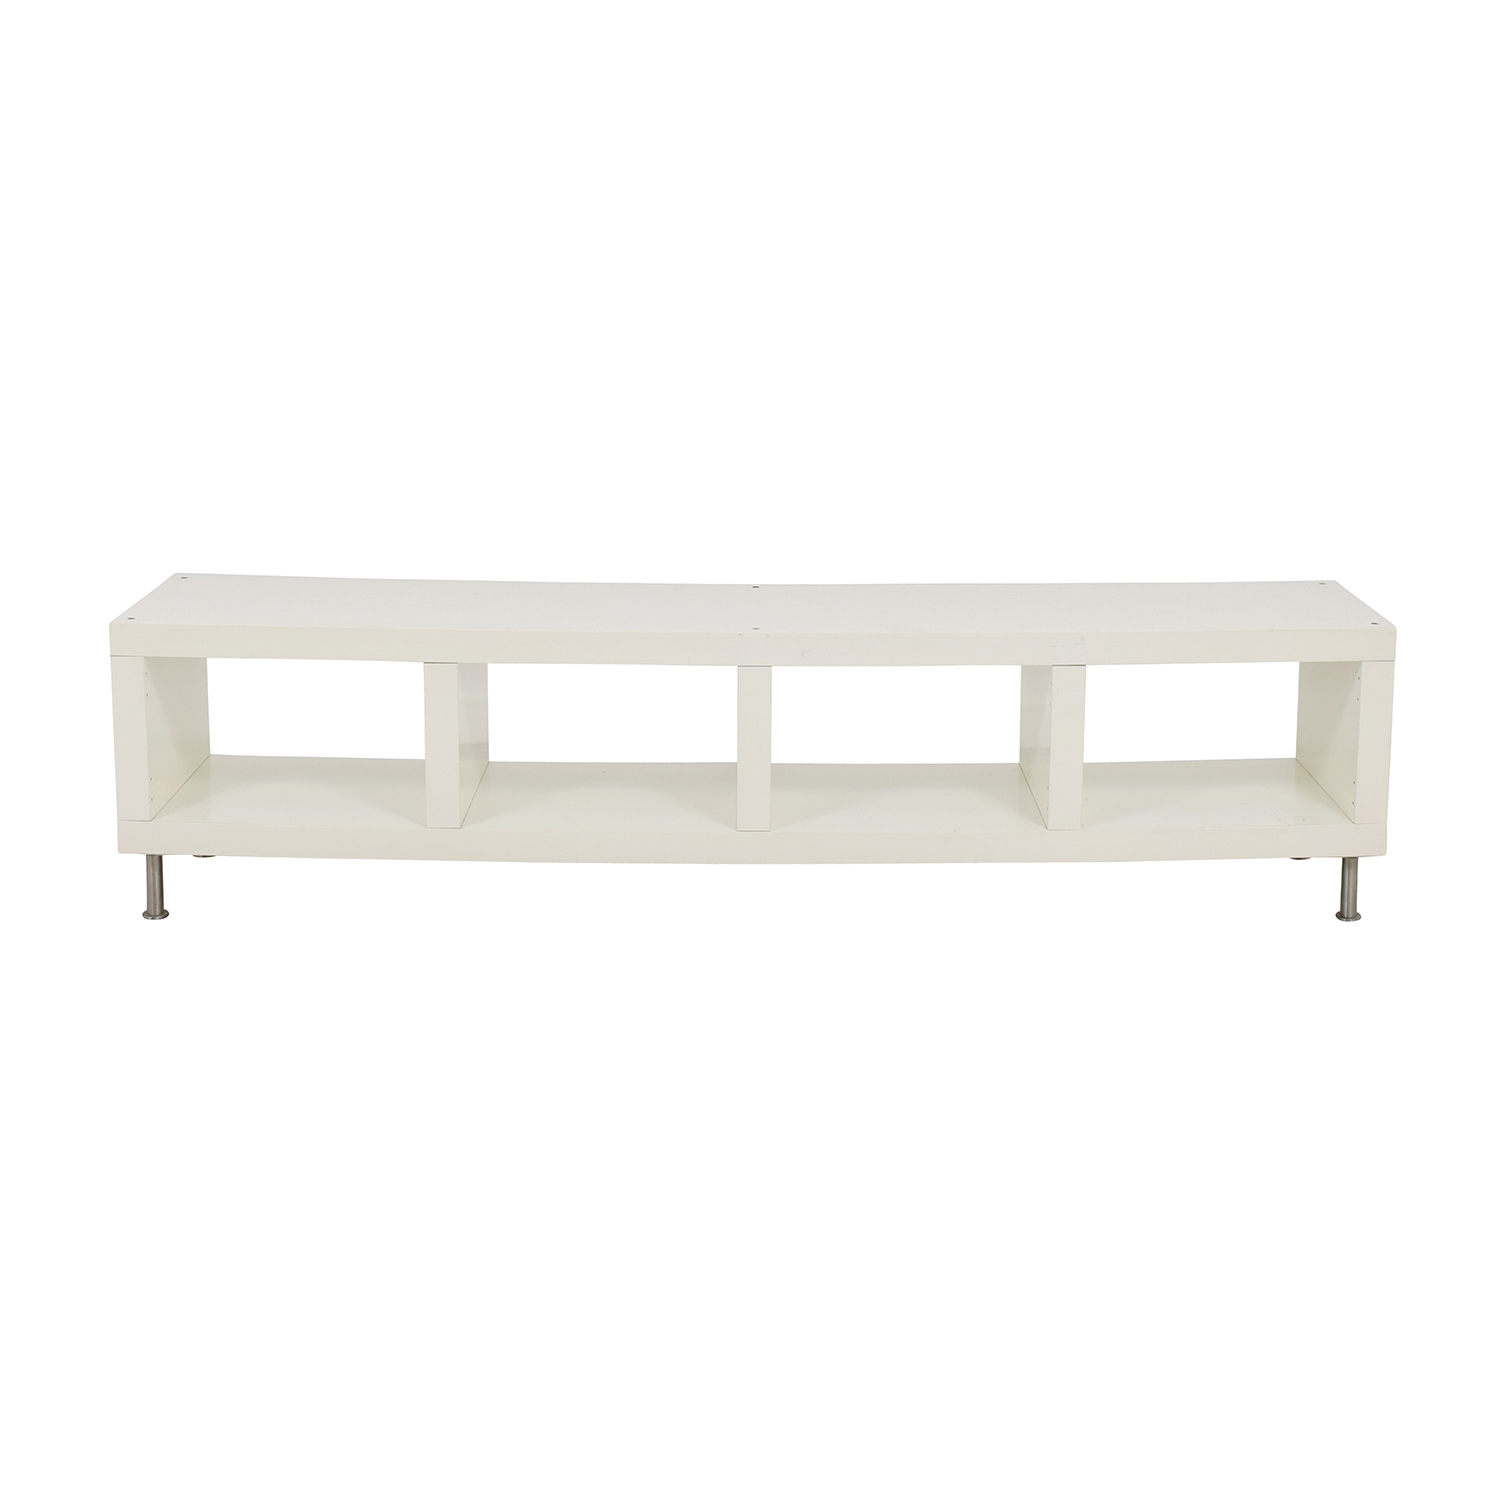 White Media Unit with Cubical Storage IKEA